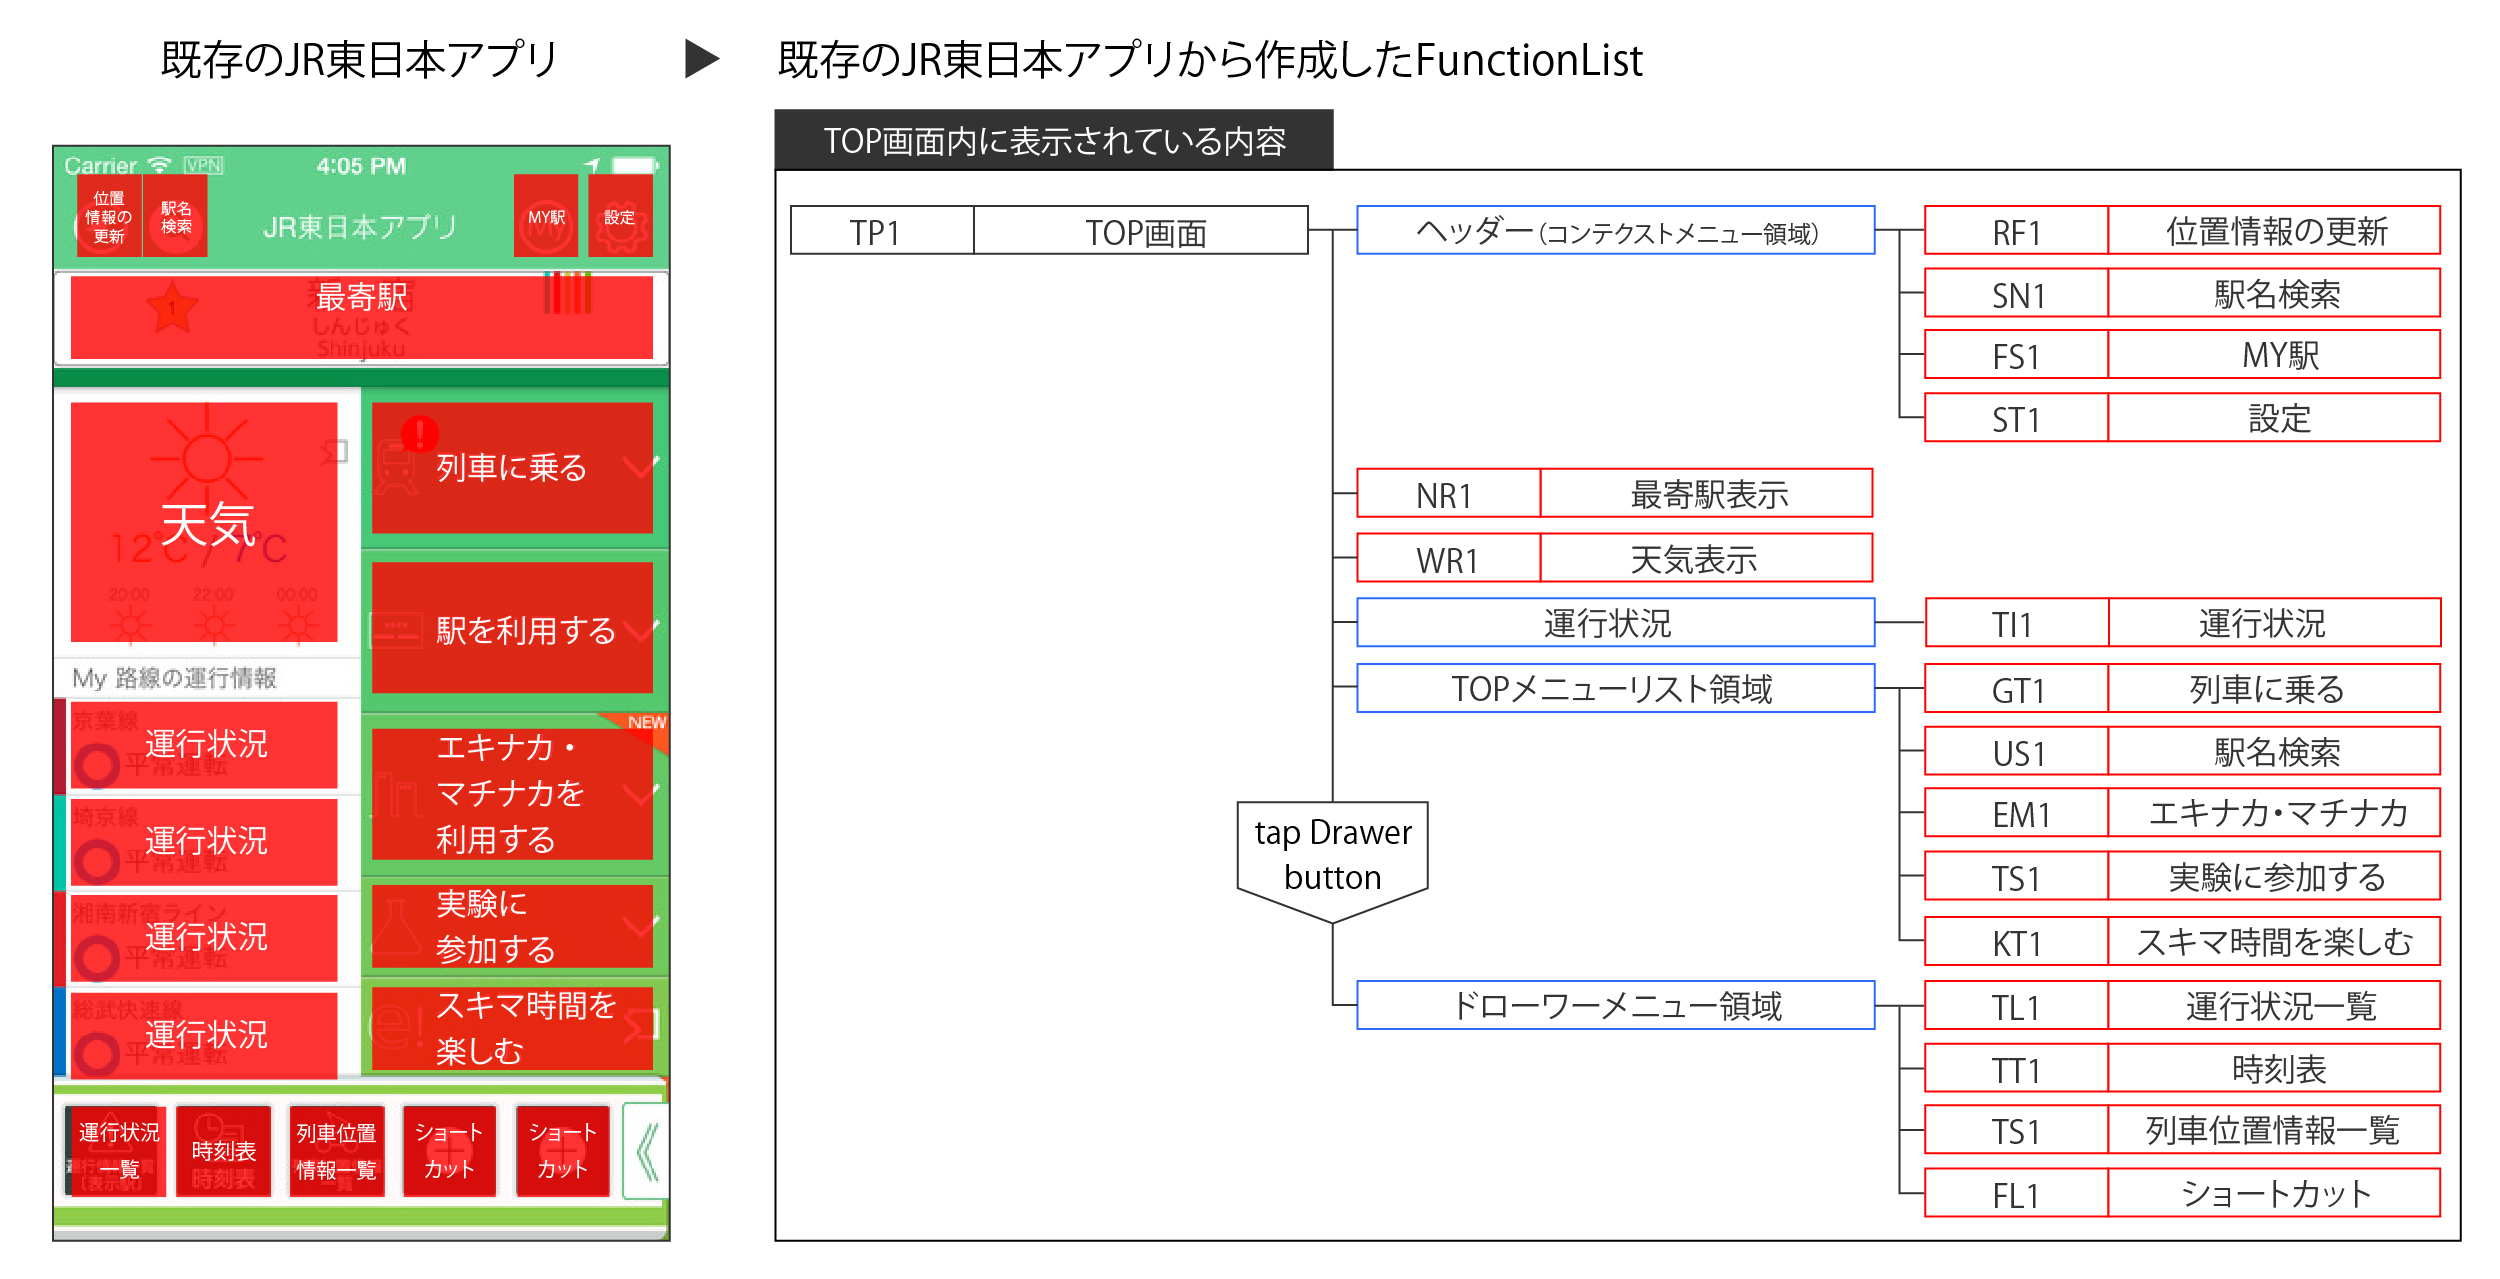 JR_function_list